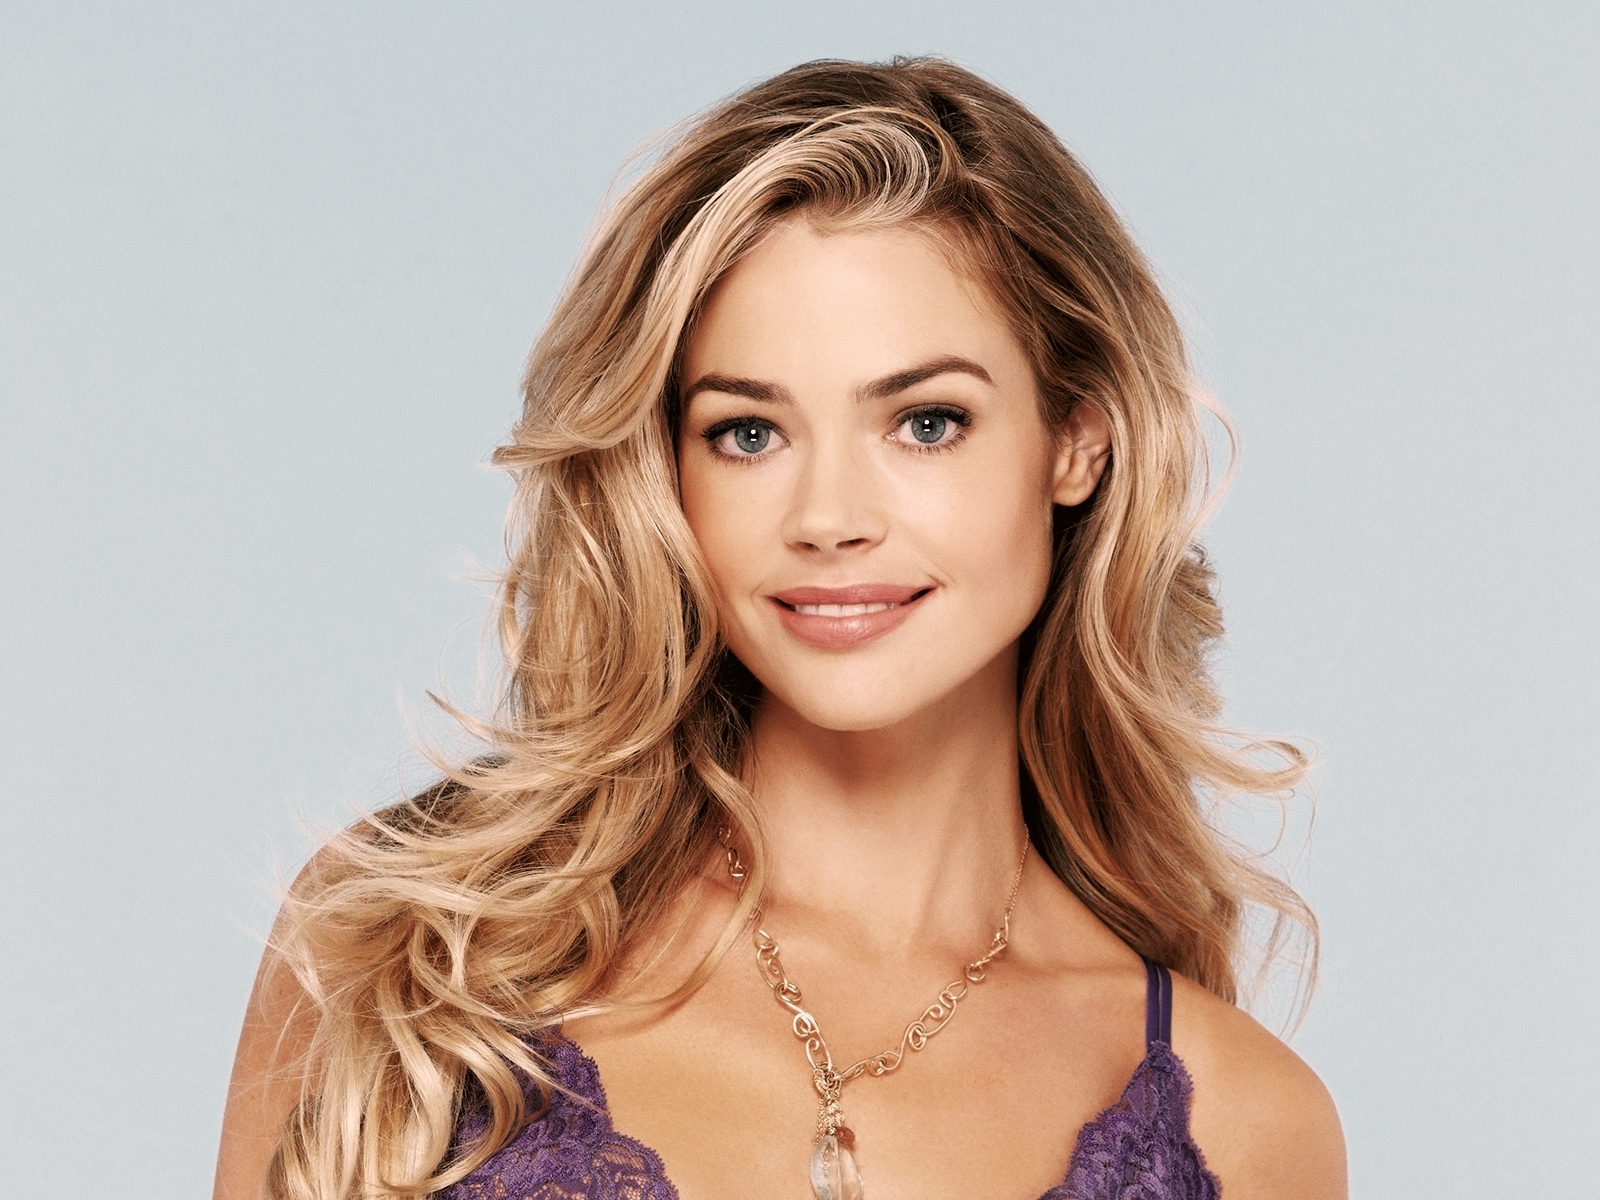 Beautiful Denise Richards  for 1600 x 1200 resolution